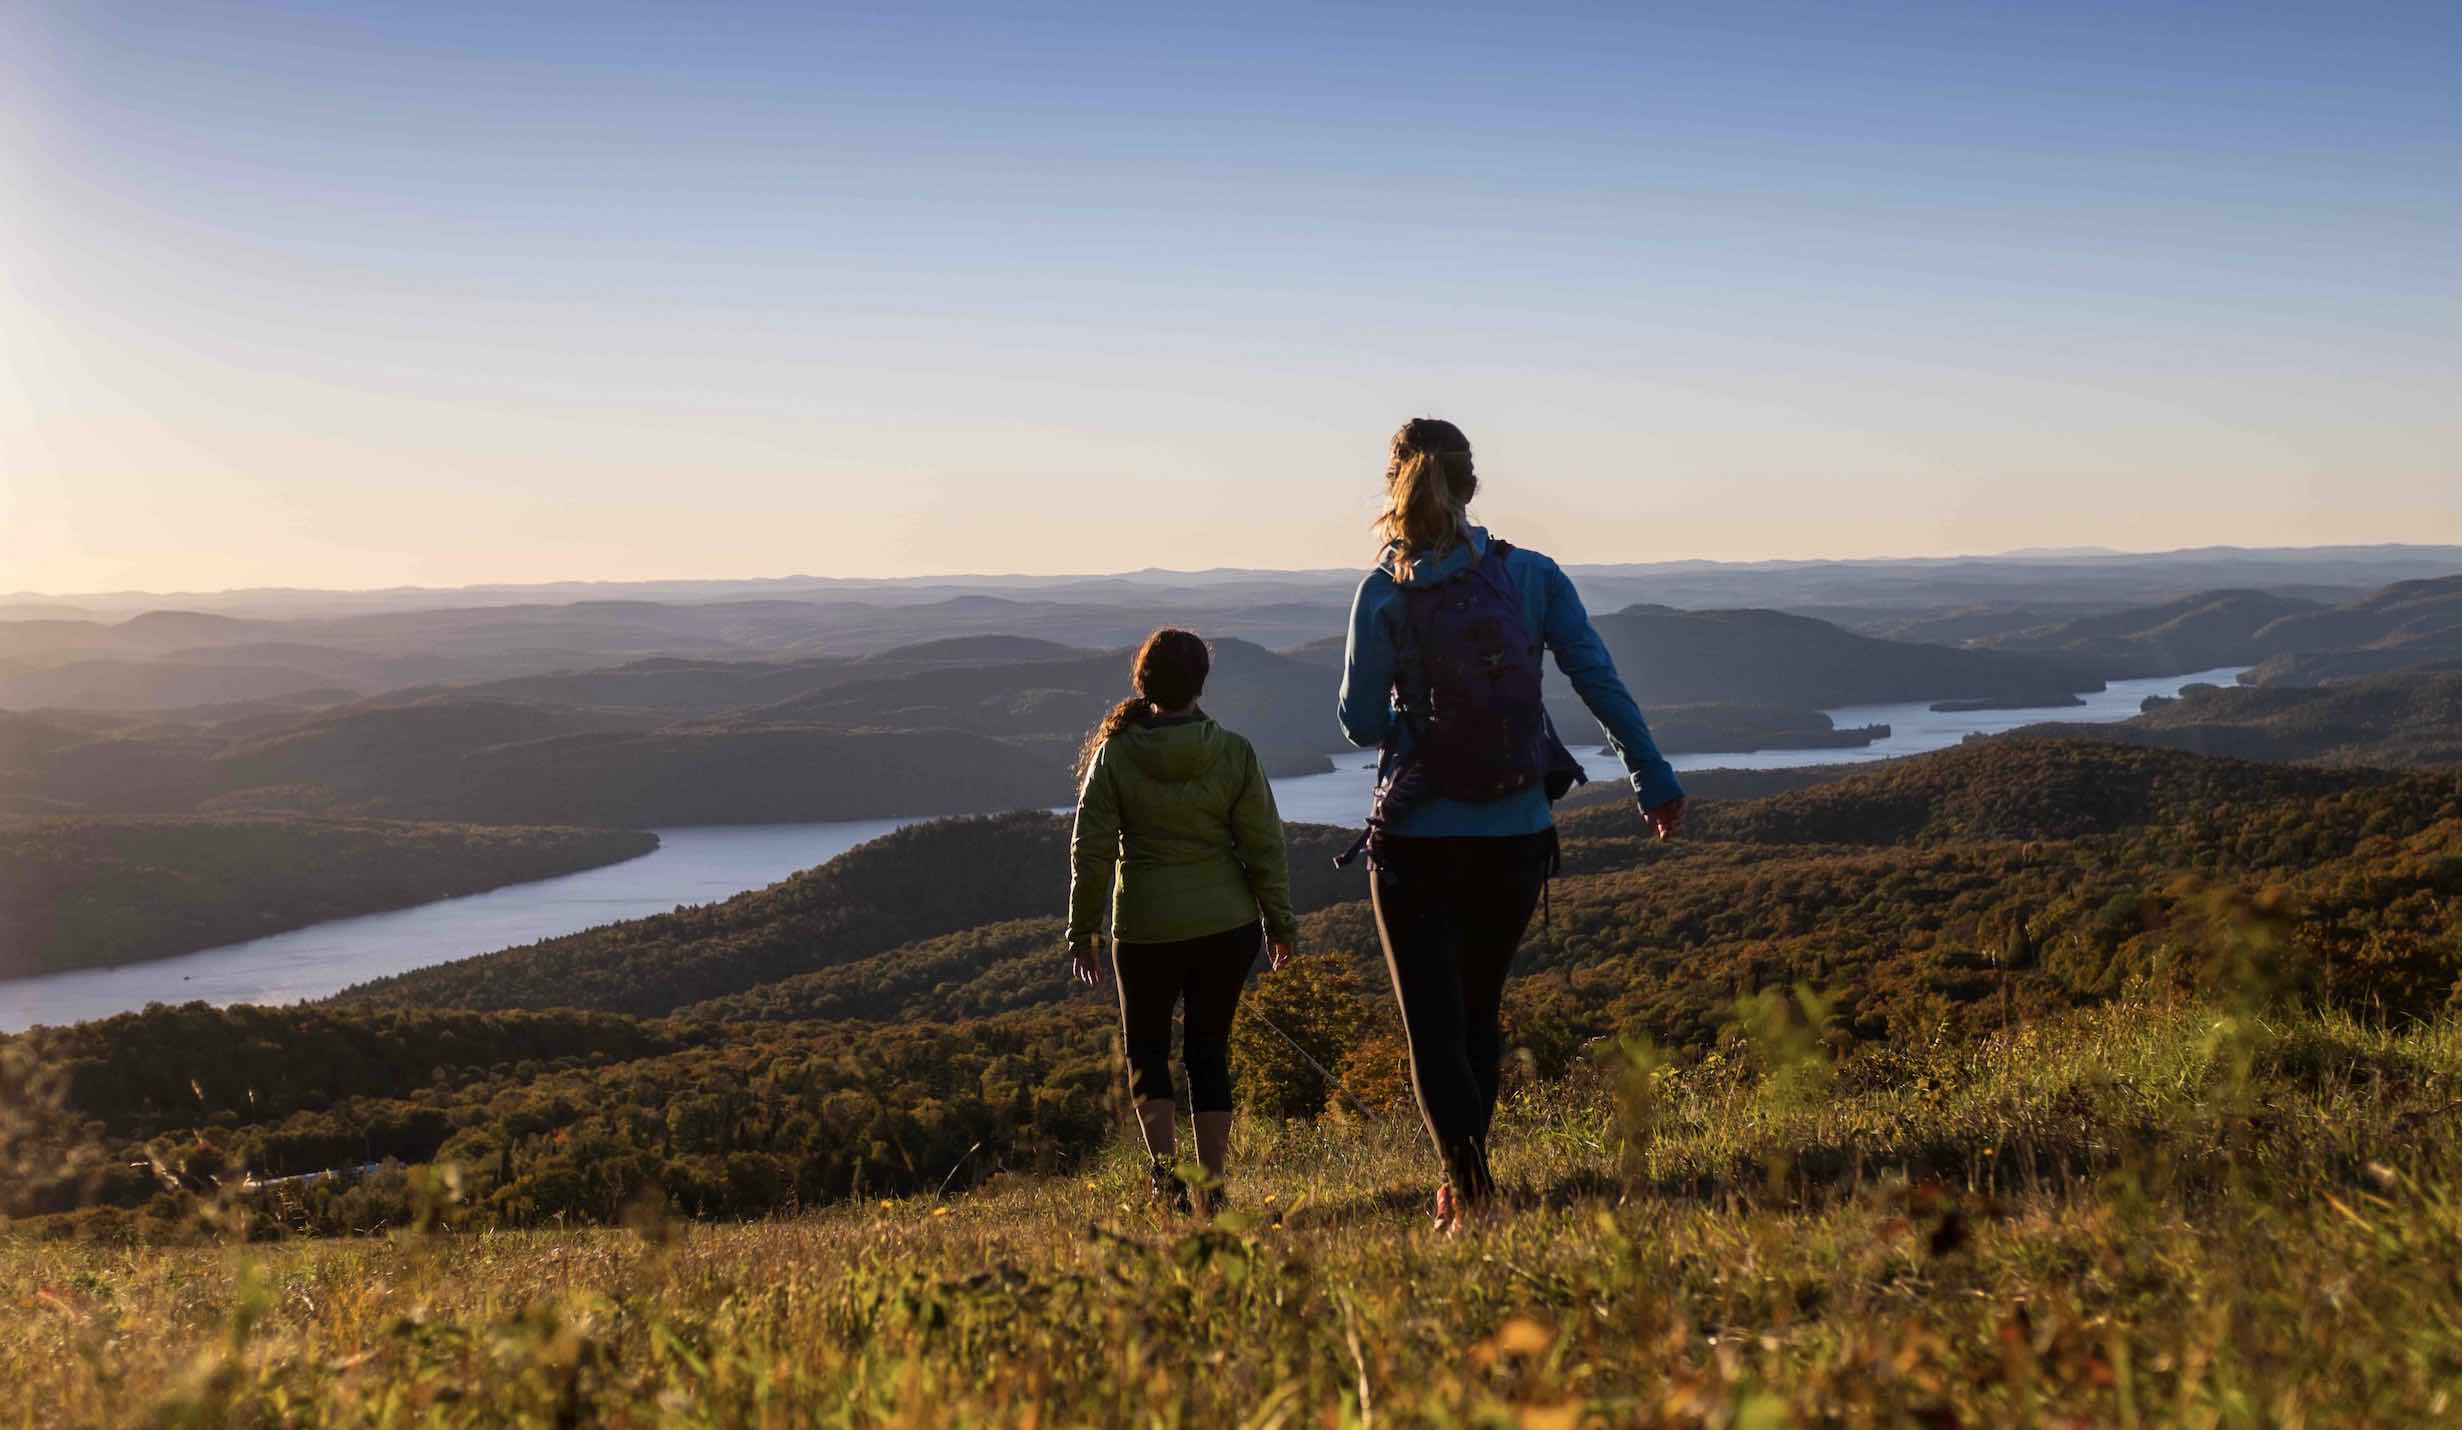 Things to do in Mont-Tremblant in summer include hiking, with 2 women looking over hills